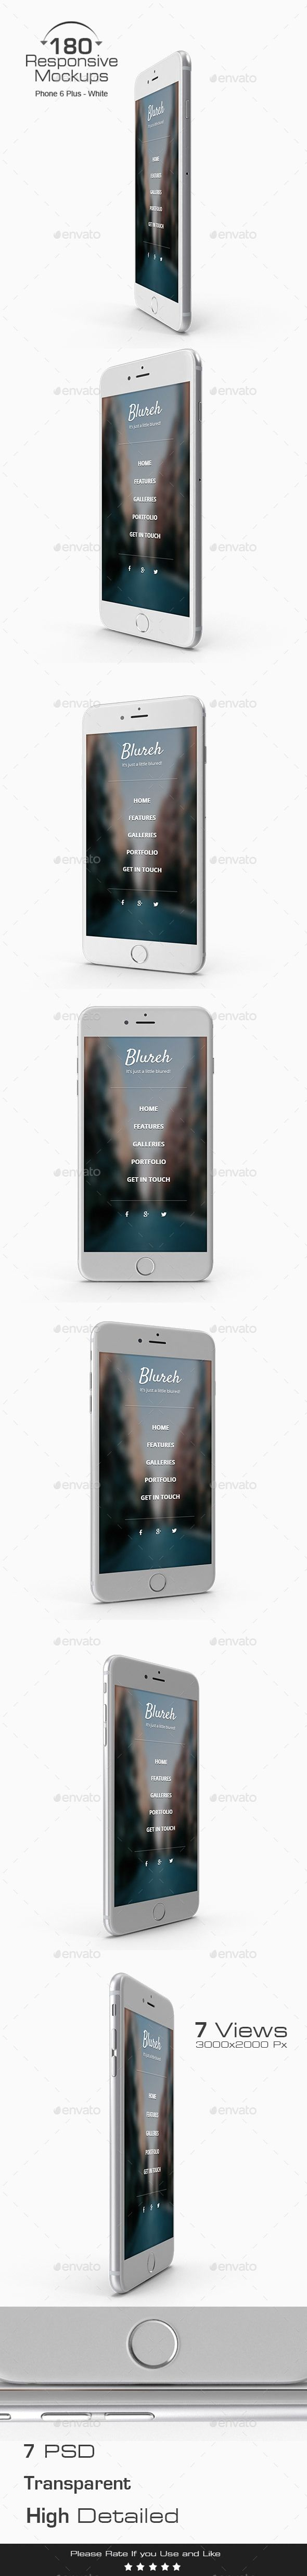 180 Responsive 3D Mockup Phone 6 Plus - White Edition. Download here: https://graphicriver.net/item/180-responsive-3d-mockup-phone-6-plus-white-edition-/17554589?ref=ksioks